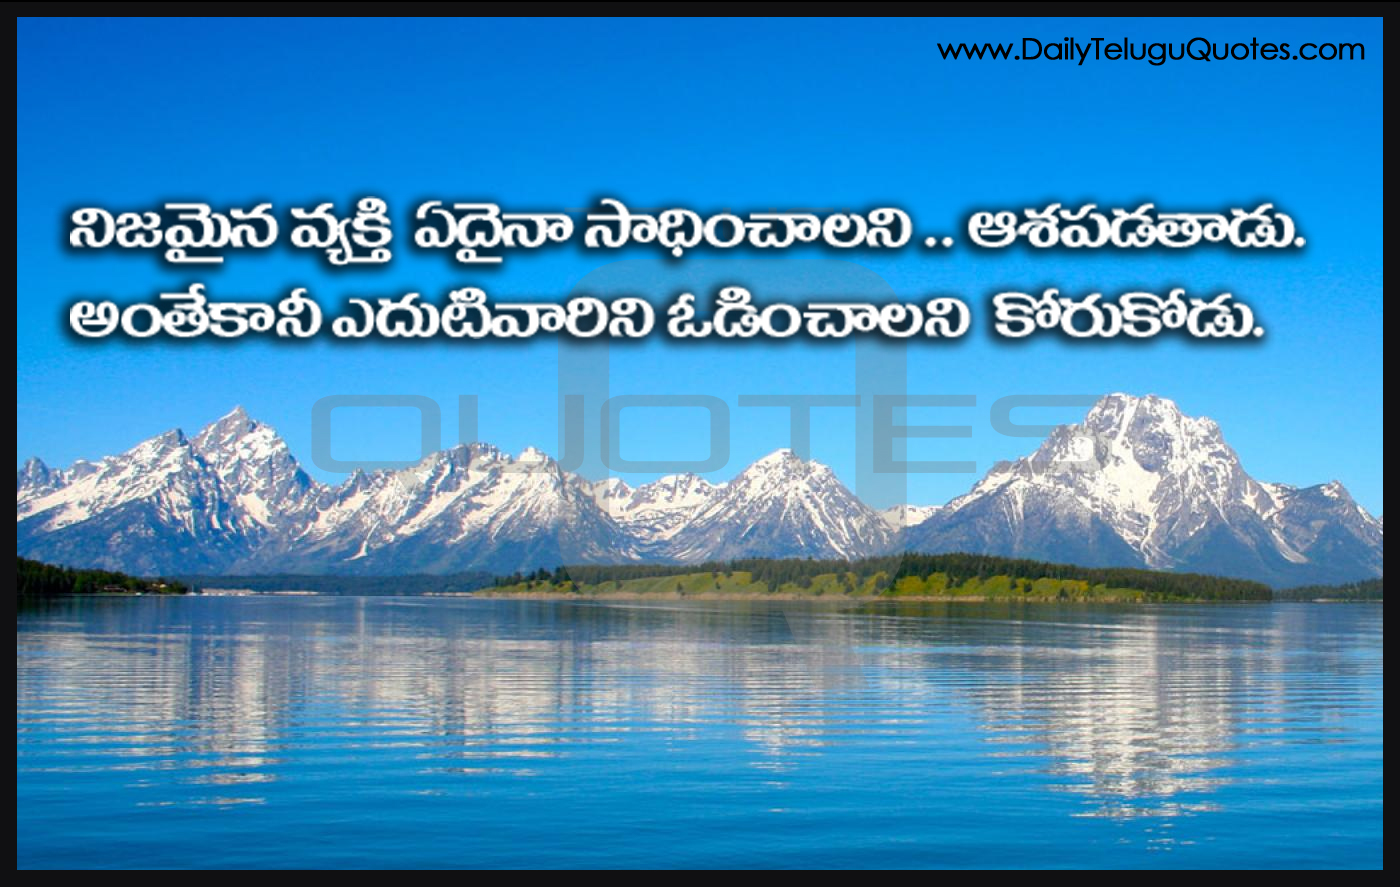 Telugu Attitude Quotes Inspirational Sayings Pictures Www